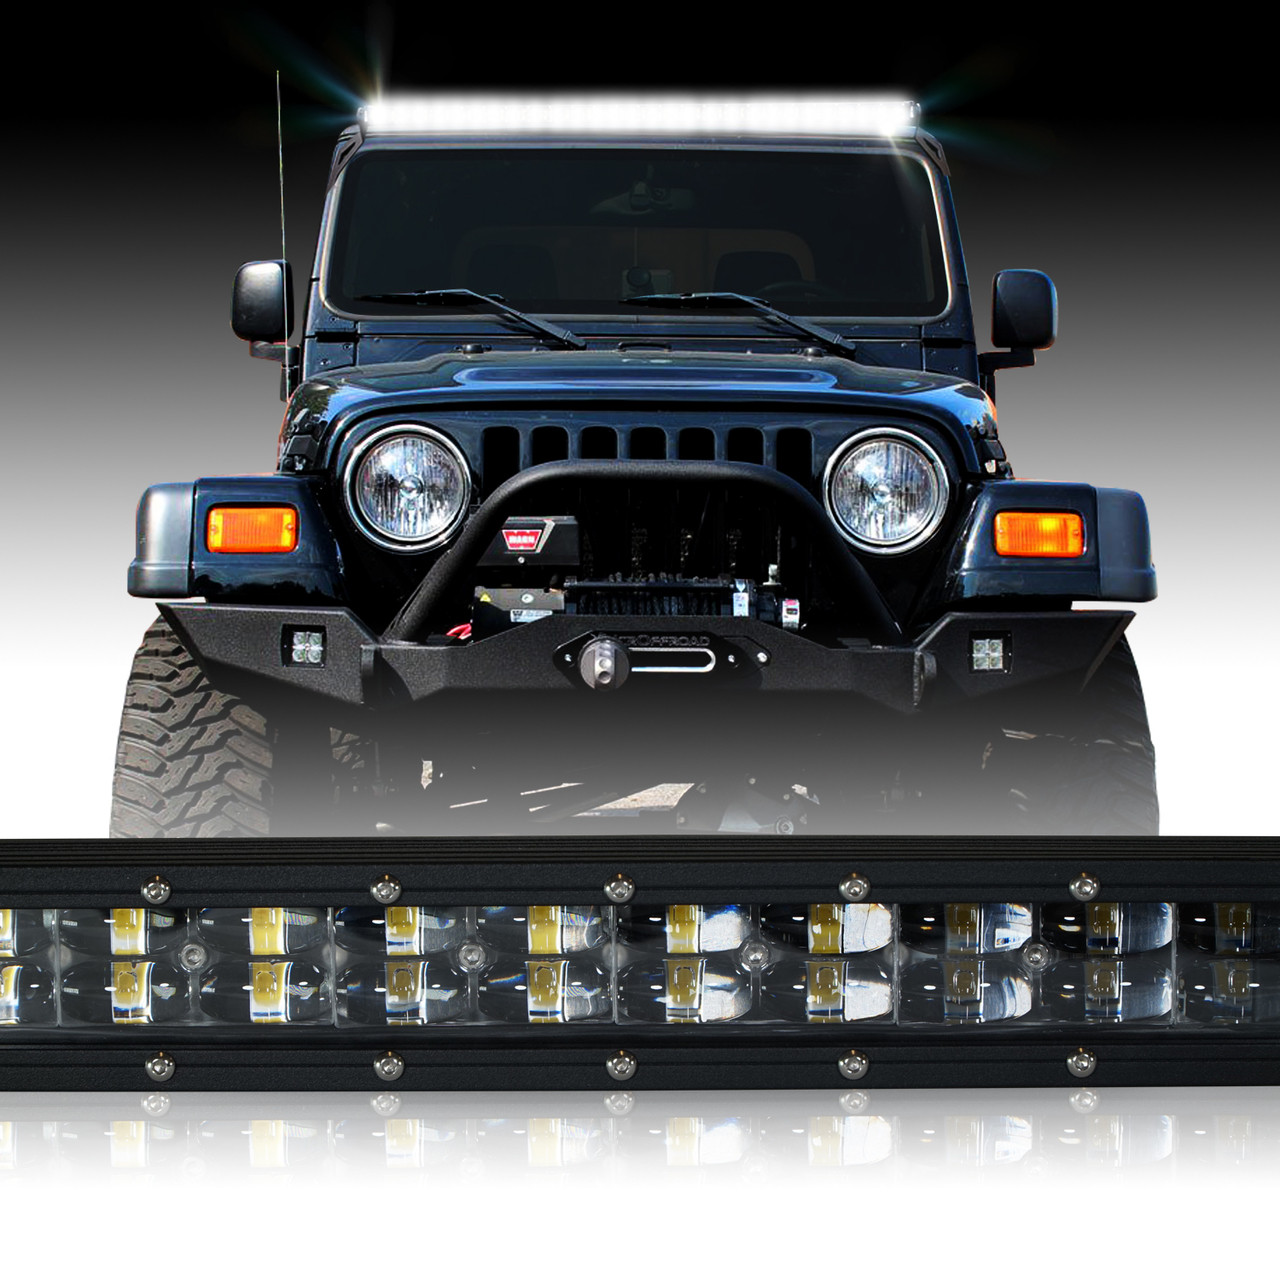 Led light bar 288w 50 inches bracket wiring harness kit for wrangler led light bar 288w 50 inches bracket wiring harness kit for wrangler tj 1997 2006 aloadofball Images